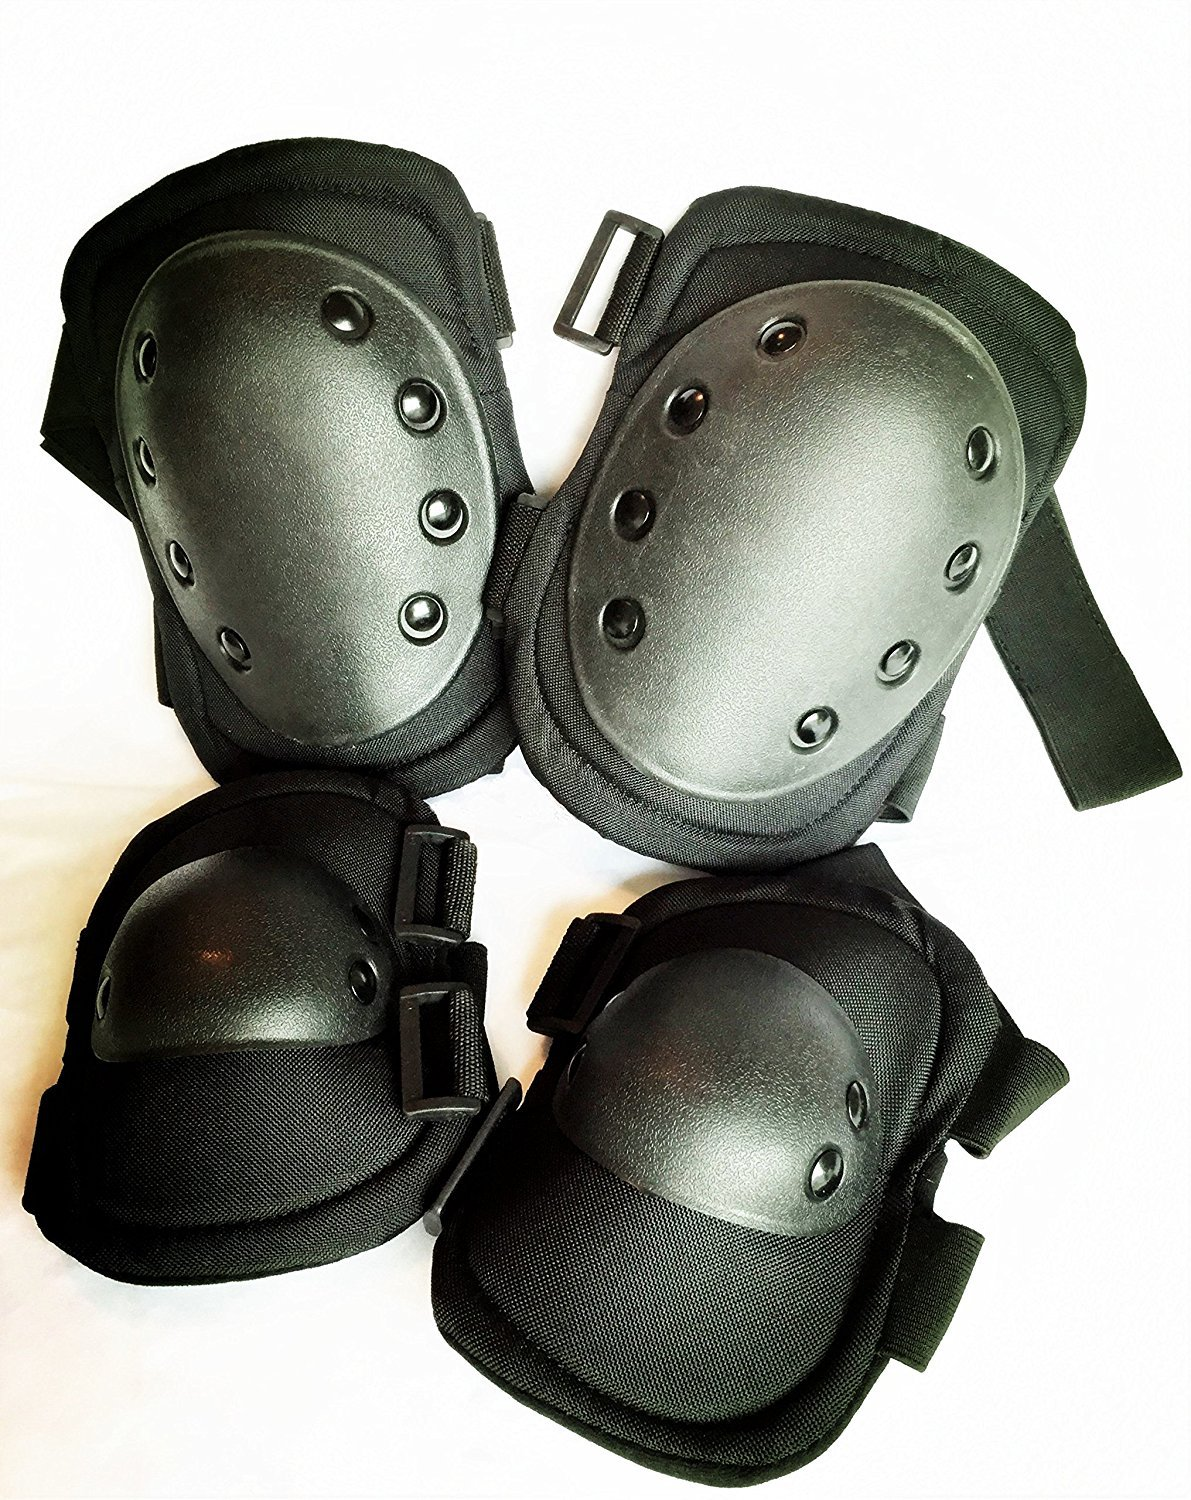 Bargain Crusader Military Tactical Knee Pad Elbow Pad Set Airsoft Knee Elbow Protective Pads Combat Paintball Skate Outdoor Sports Safety Guard Gear (Black) by Bargain Crusader